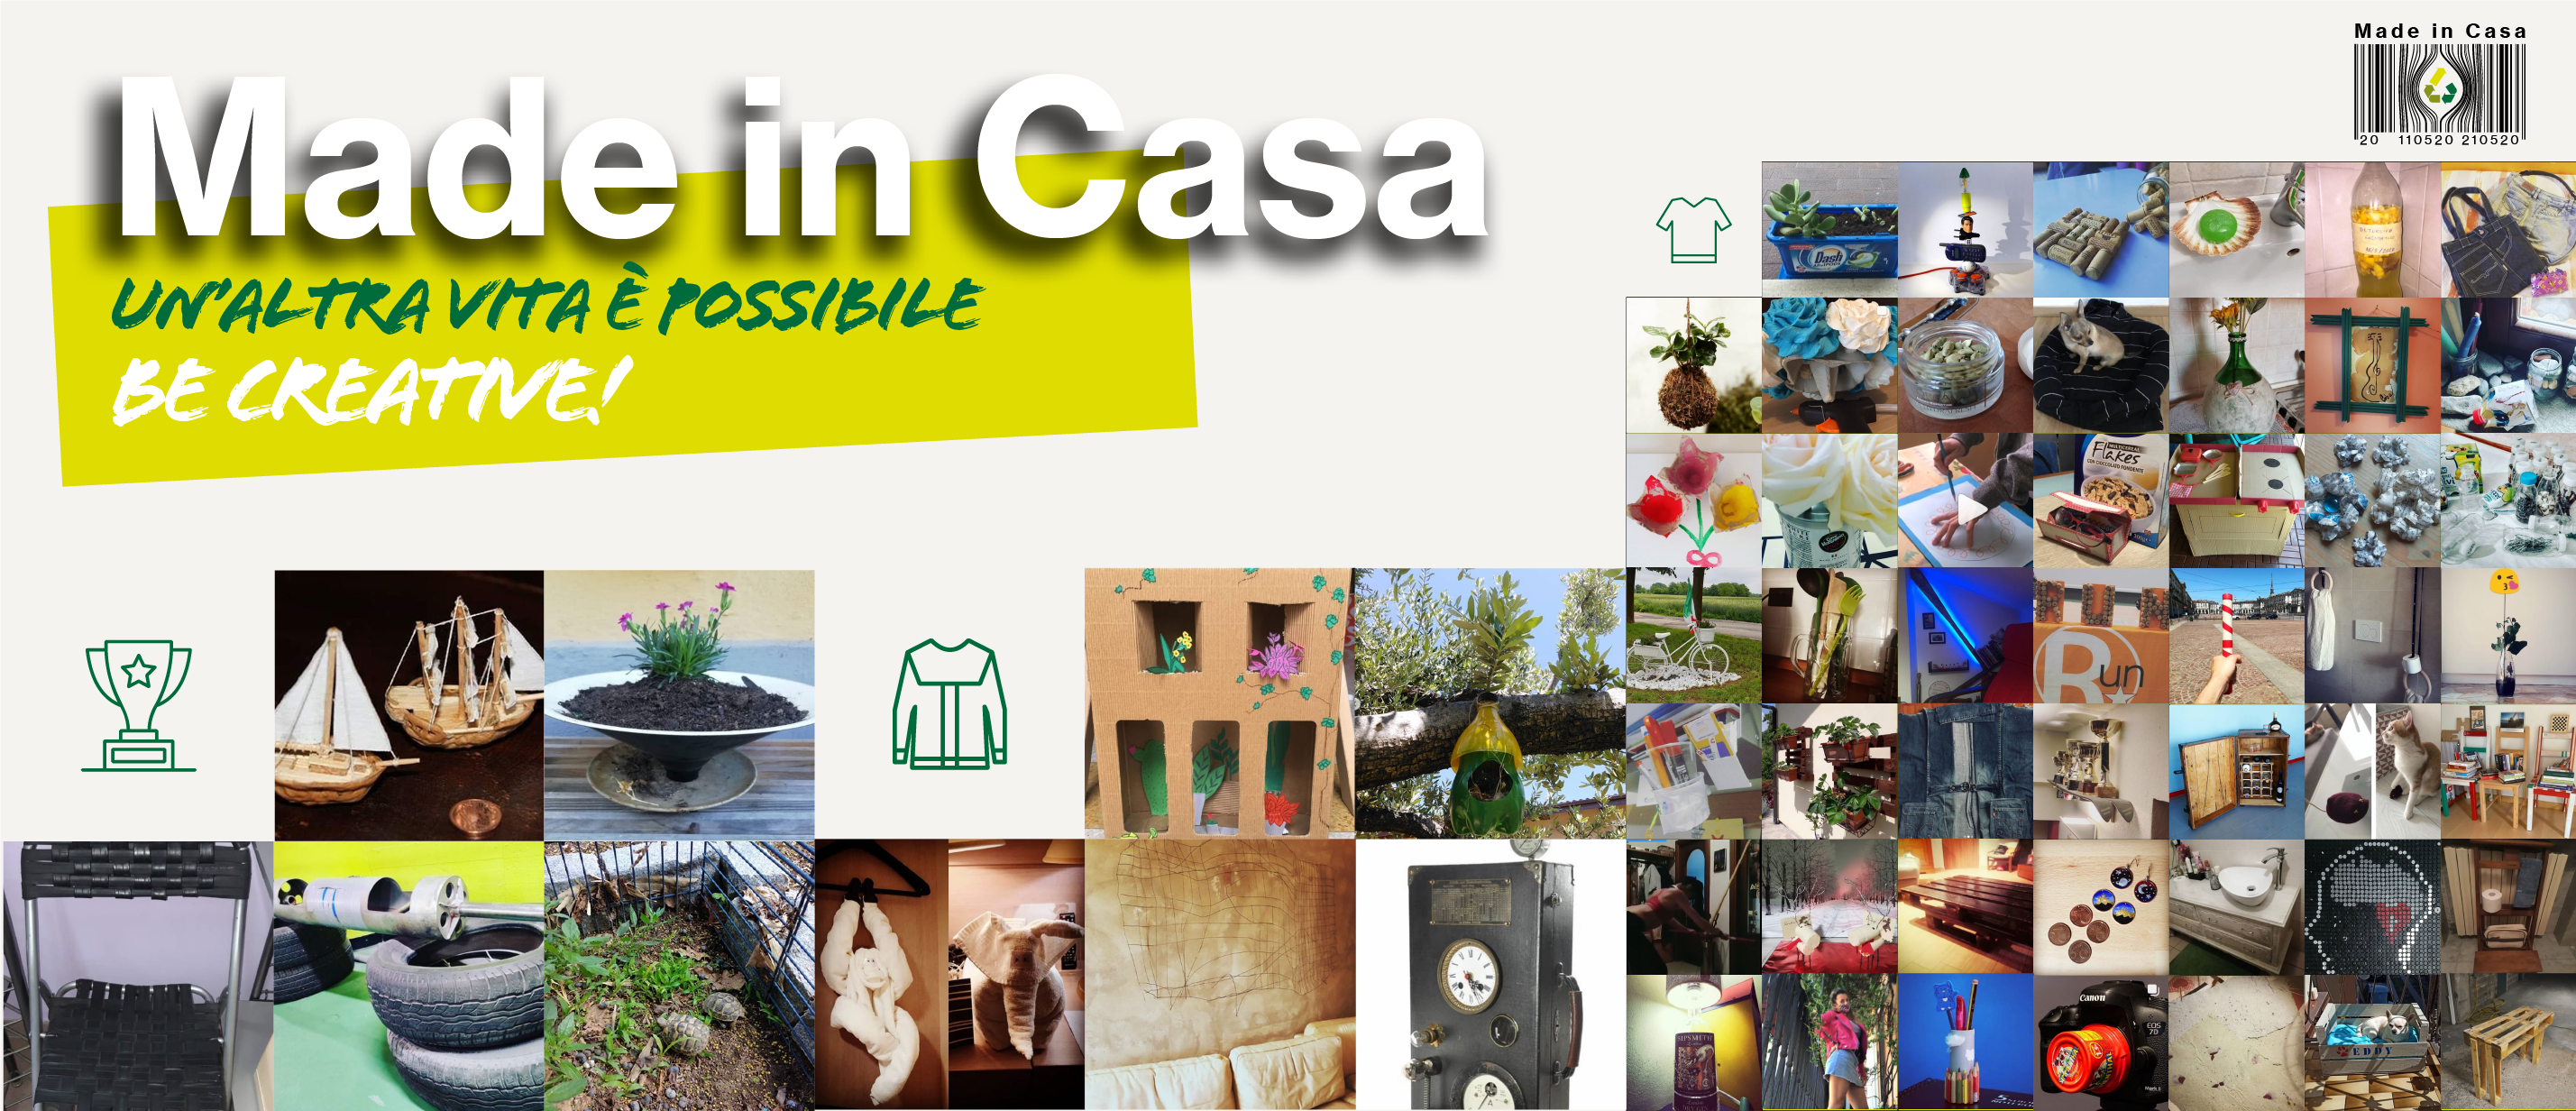 Made in Casa 2020 - i vincitori del contest